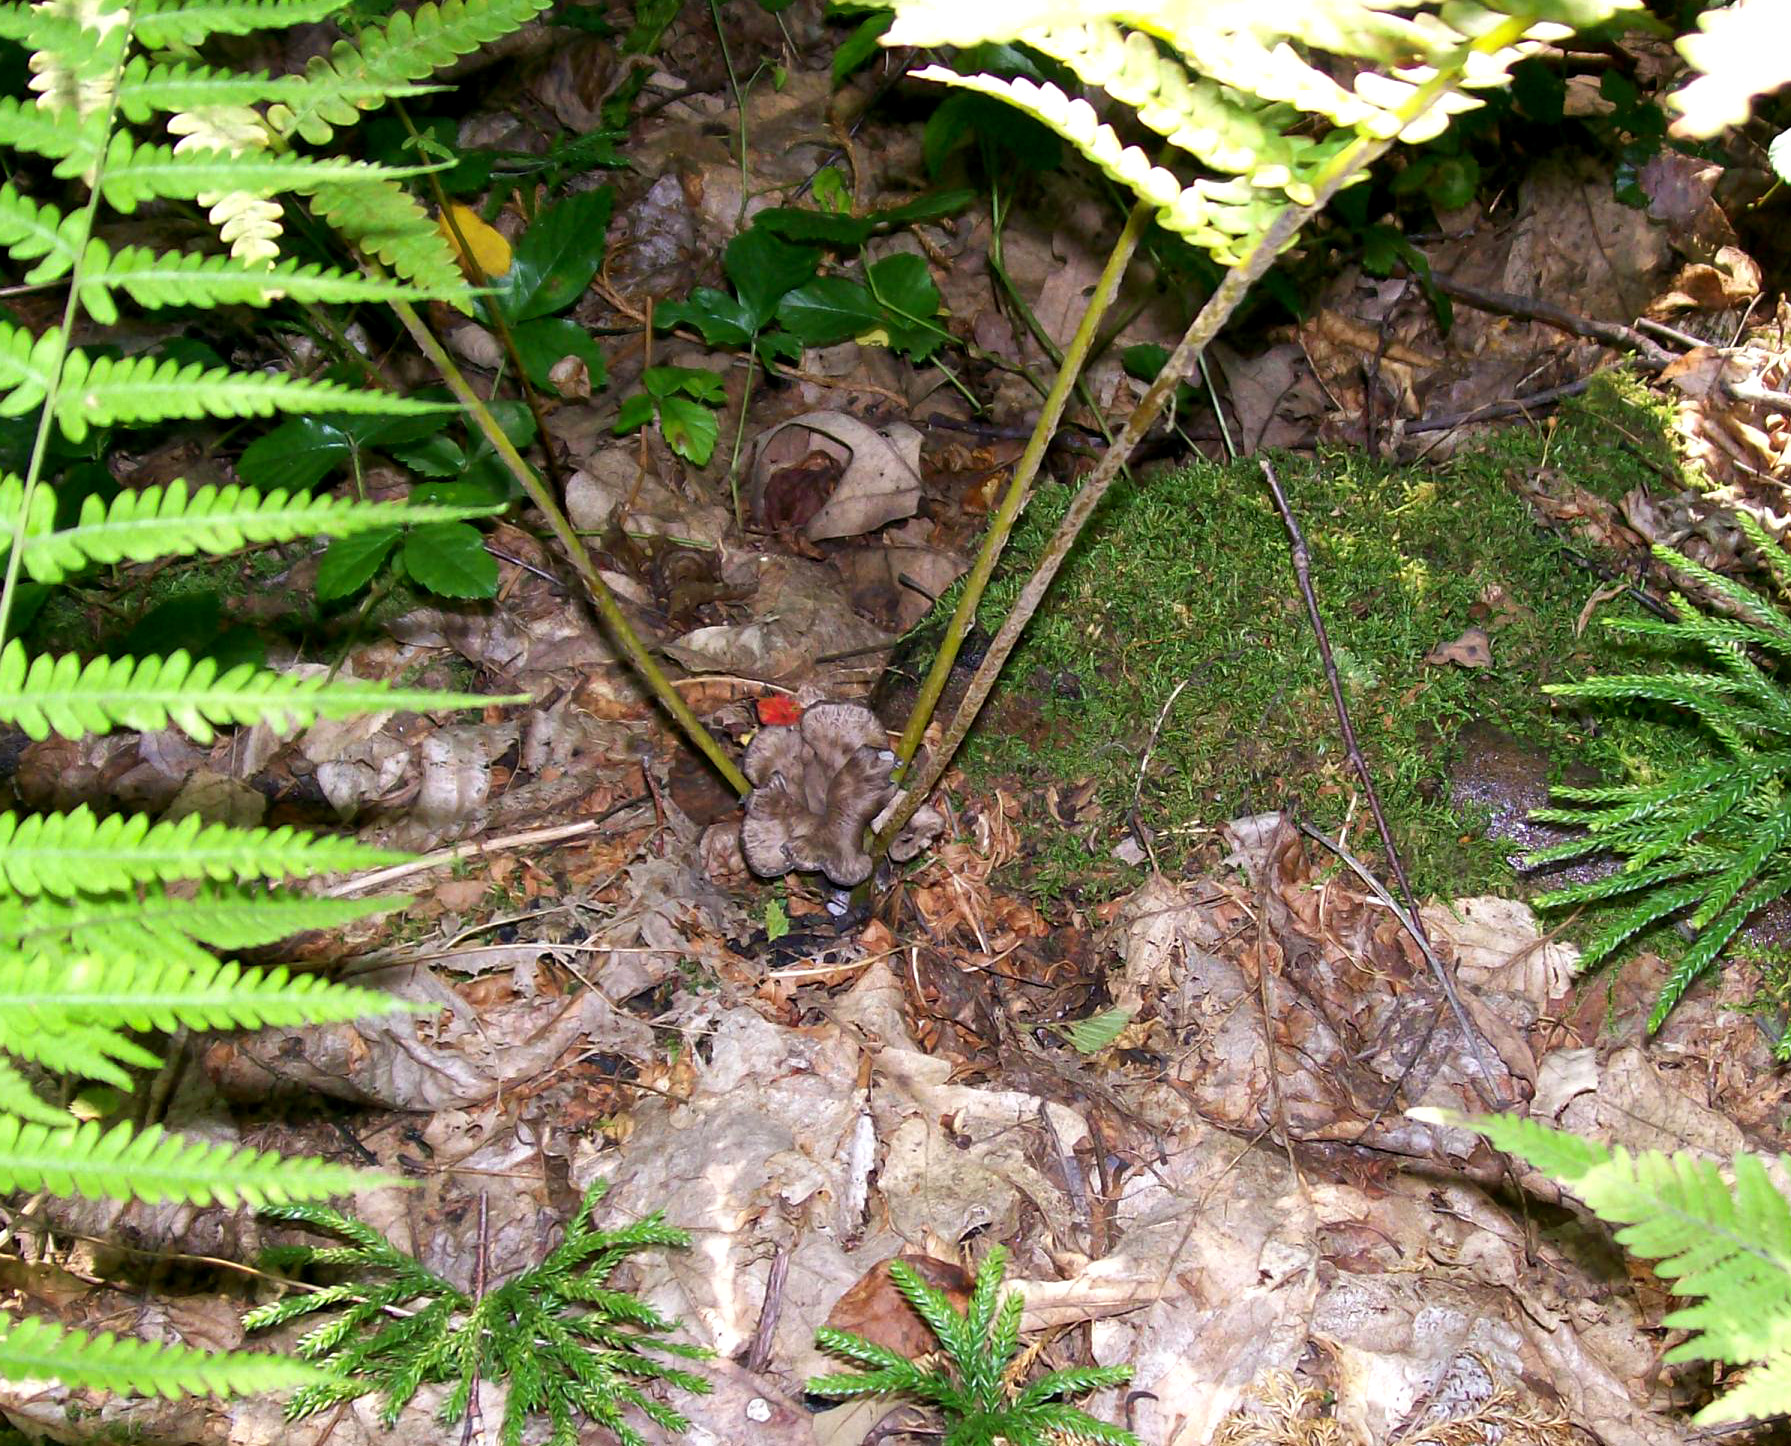 Photo of a Craterellus fallax - Black Trumpet growing between stems of fern fronds - showing that they can be anywhere